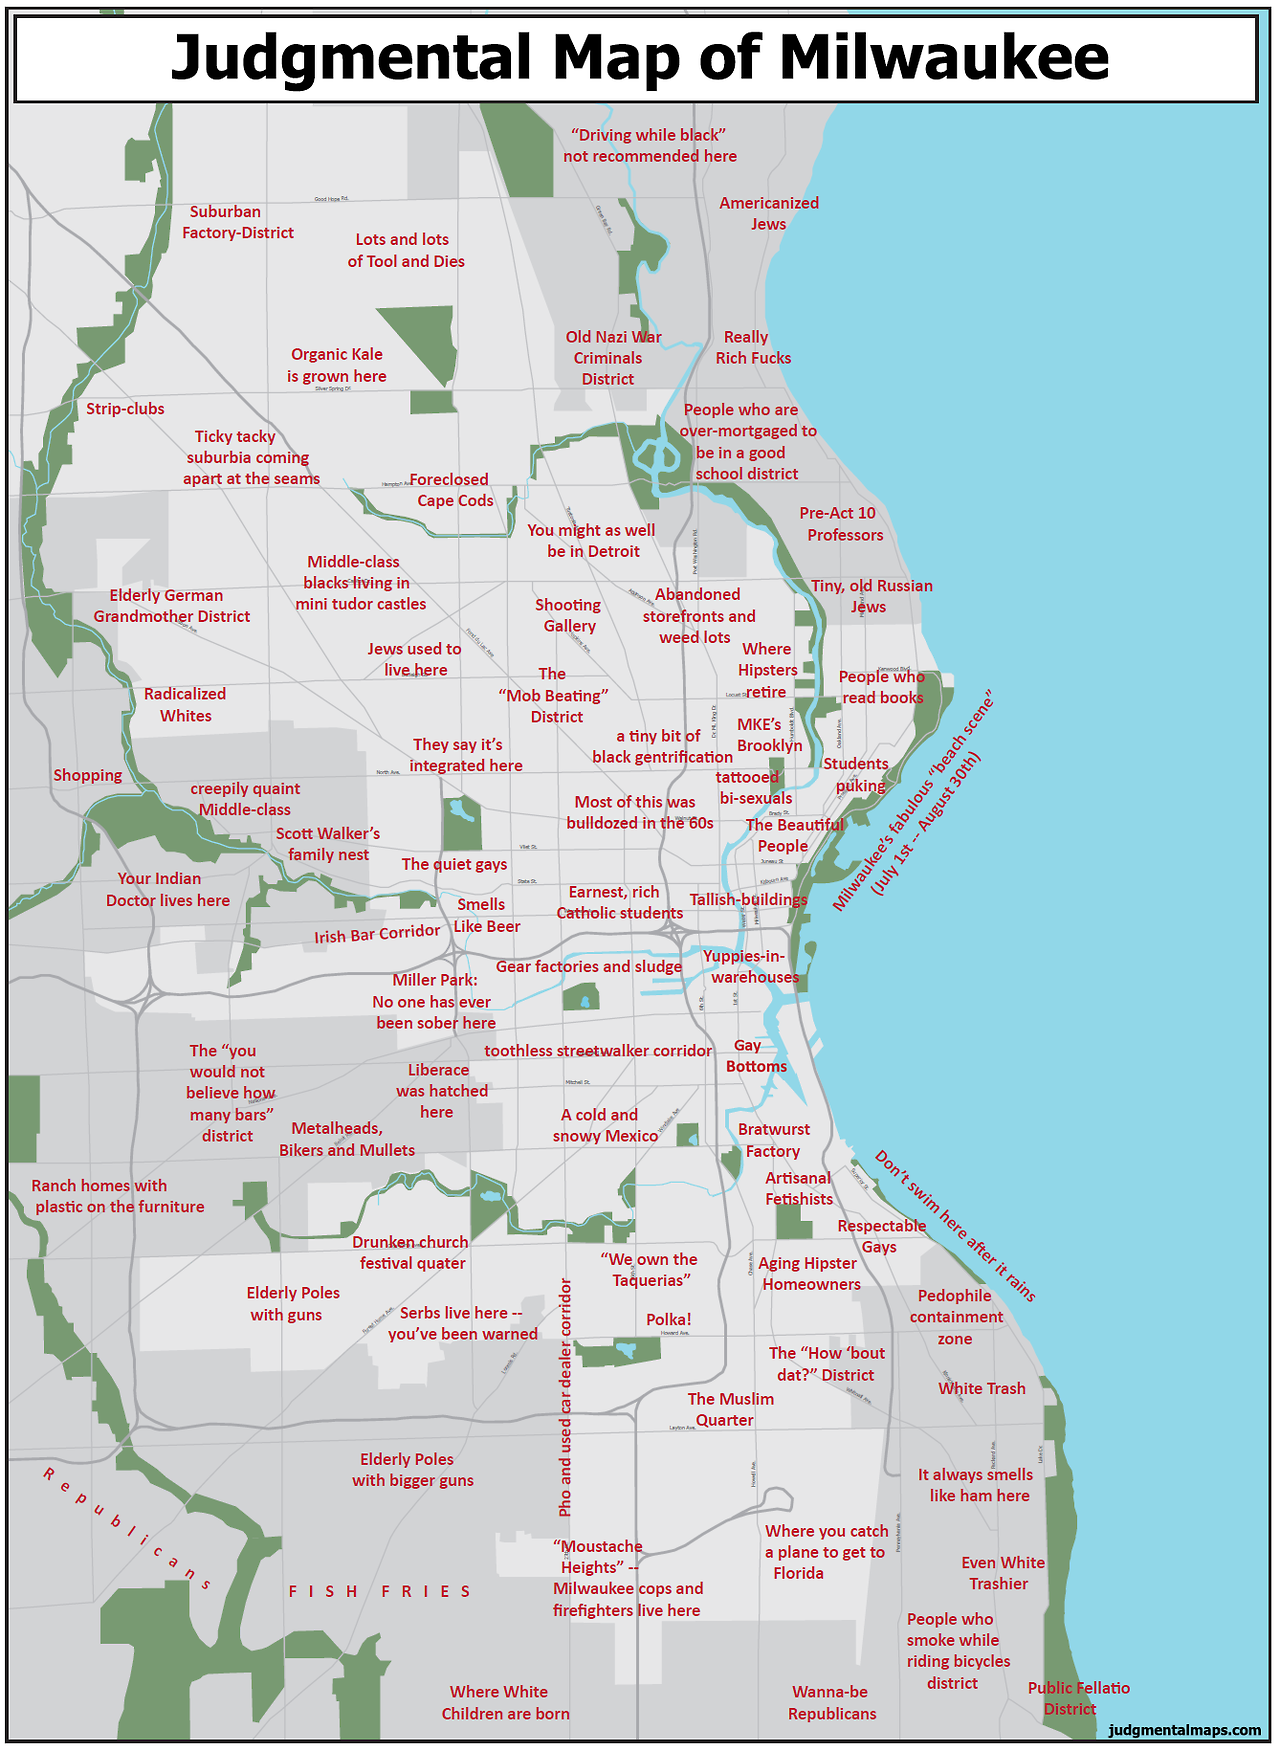 I Started Off In Students Puking Moved To Tallishbuildings - Chicago judgemental map